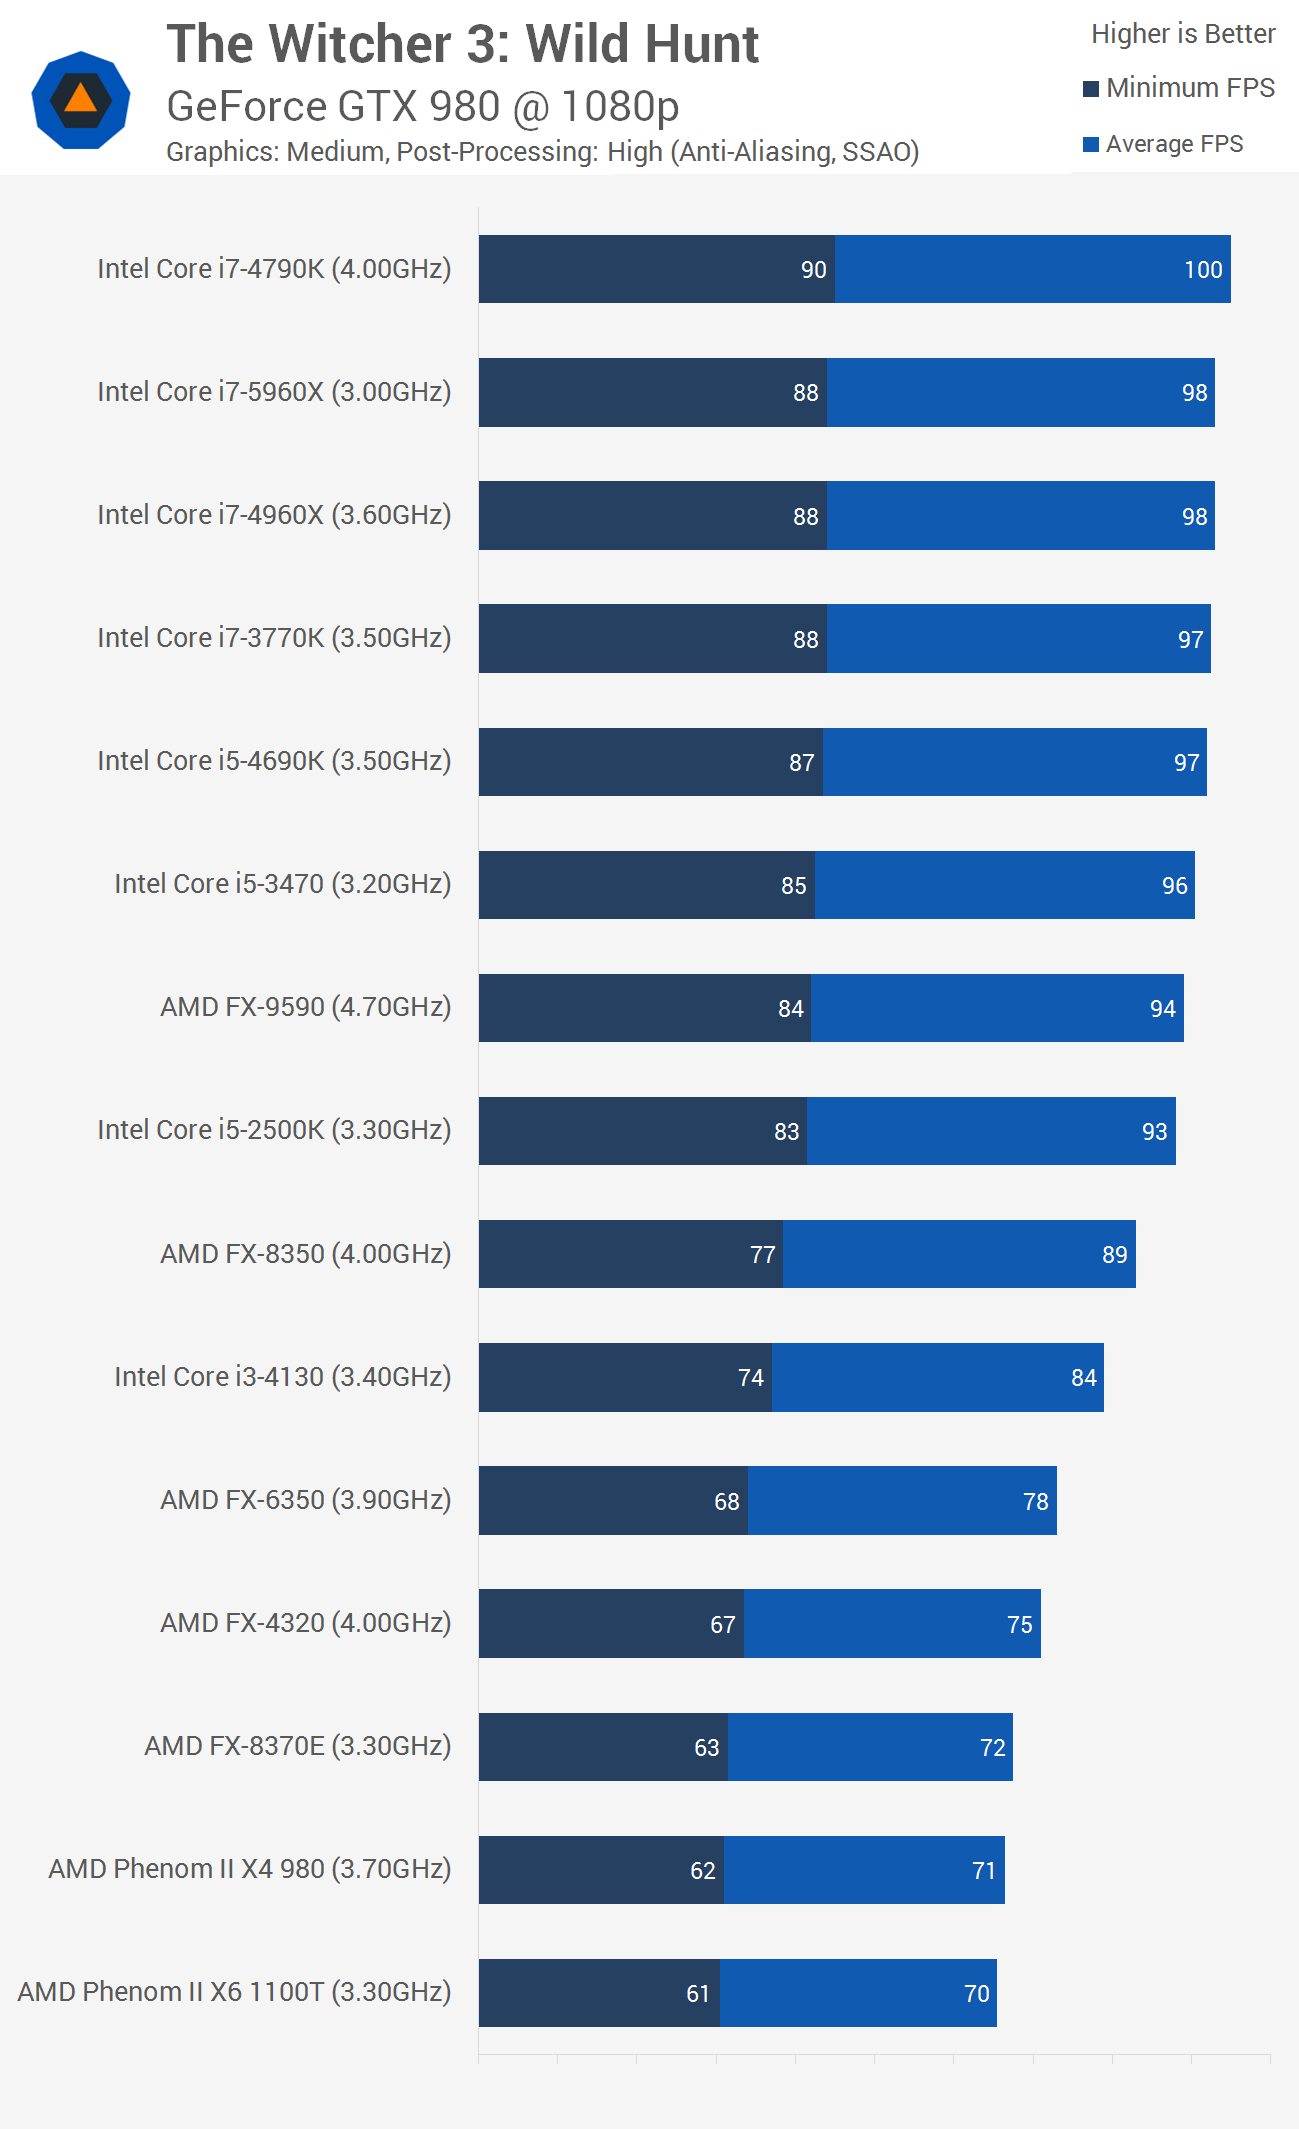 The Witcher 3: Wild Hunt Benchmarked: Graphics & CPU Performance